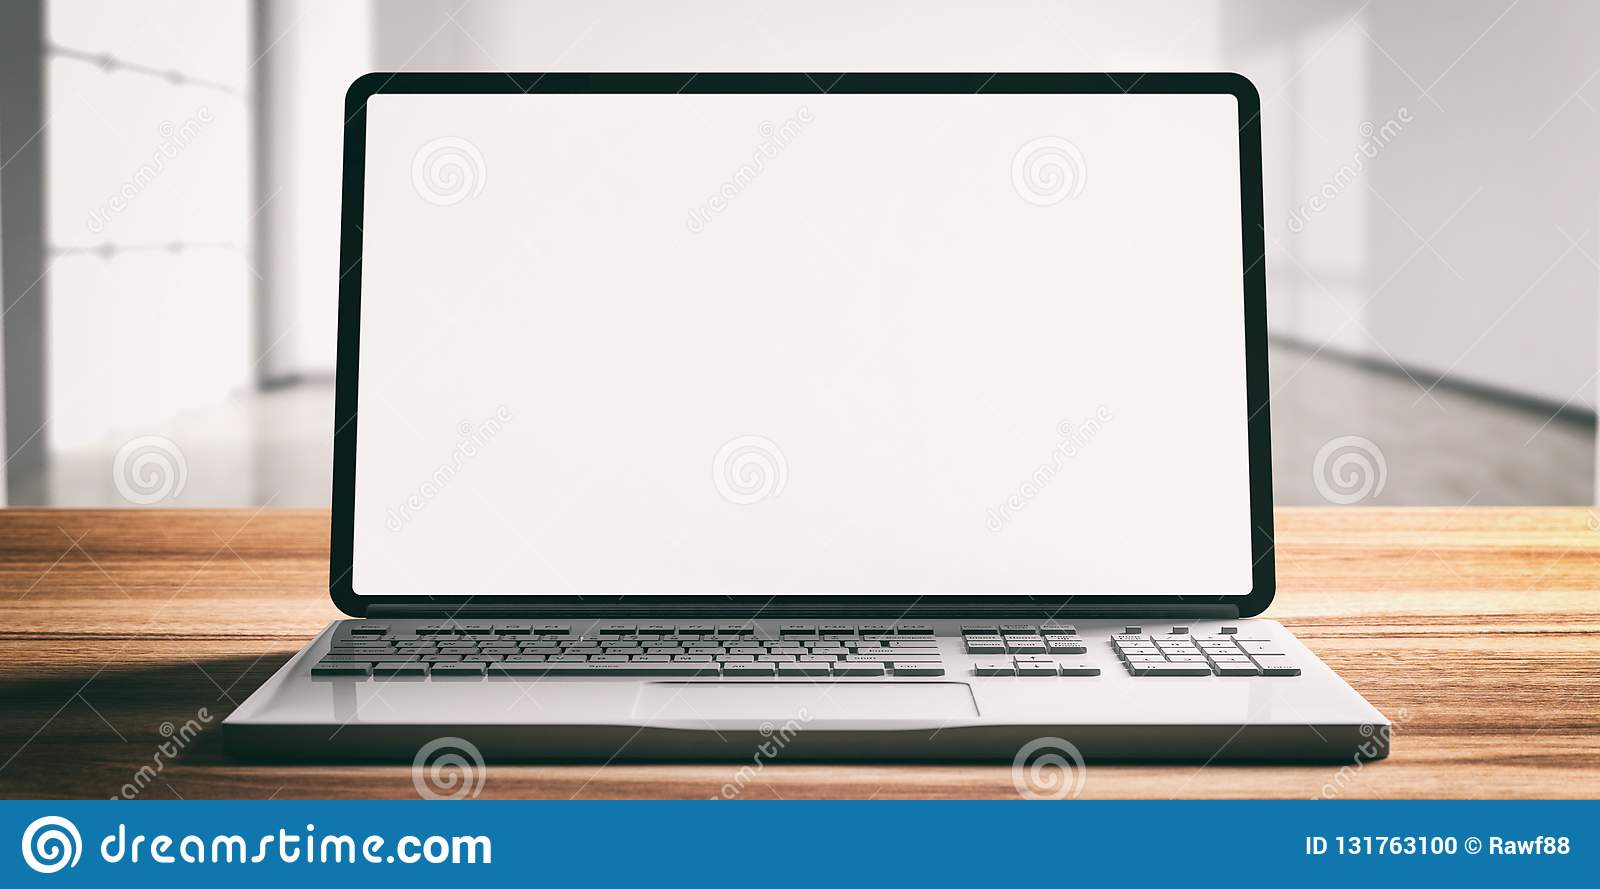 computer laptop with blank